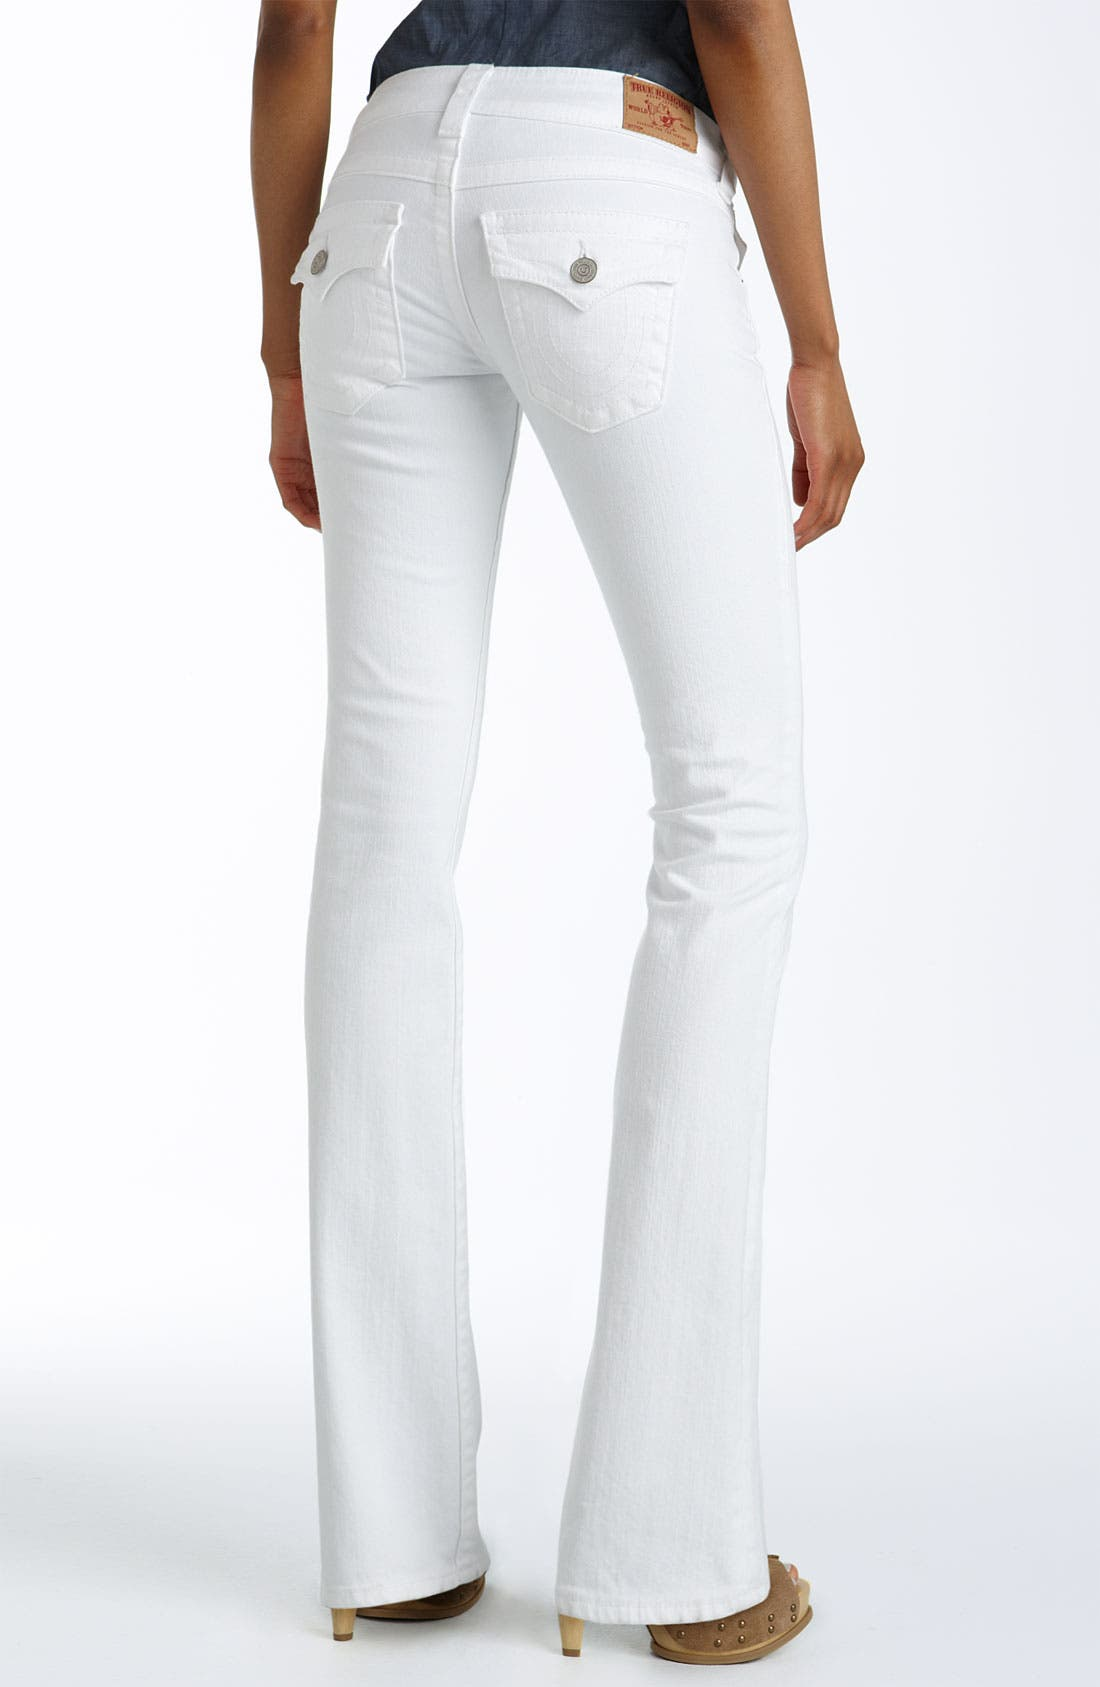 Main Image - True Religion Brand Jeans 'Becky' Bootcut Stretch Jeans (Body Rinse White)